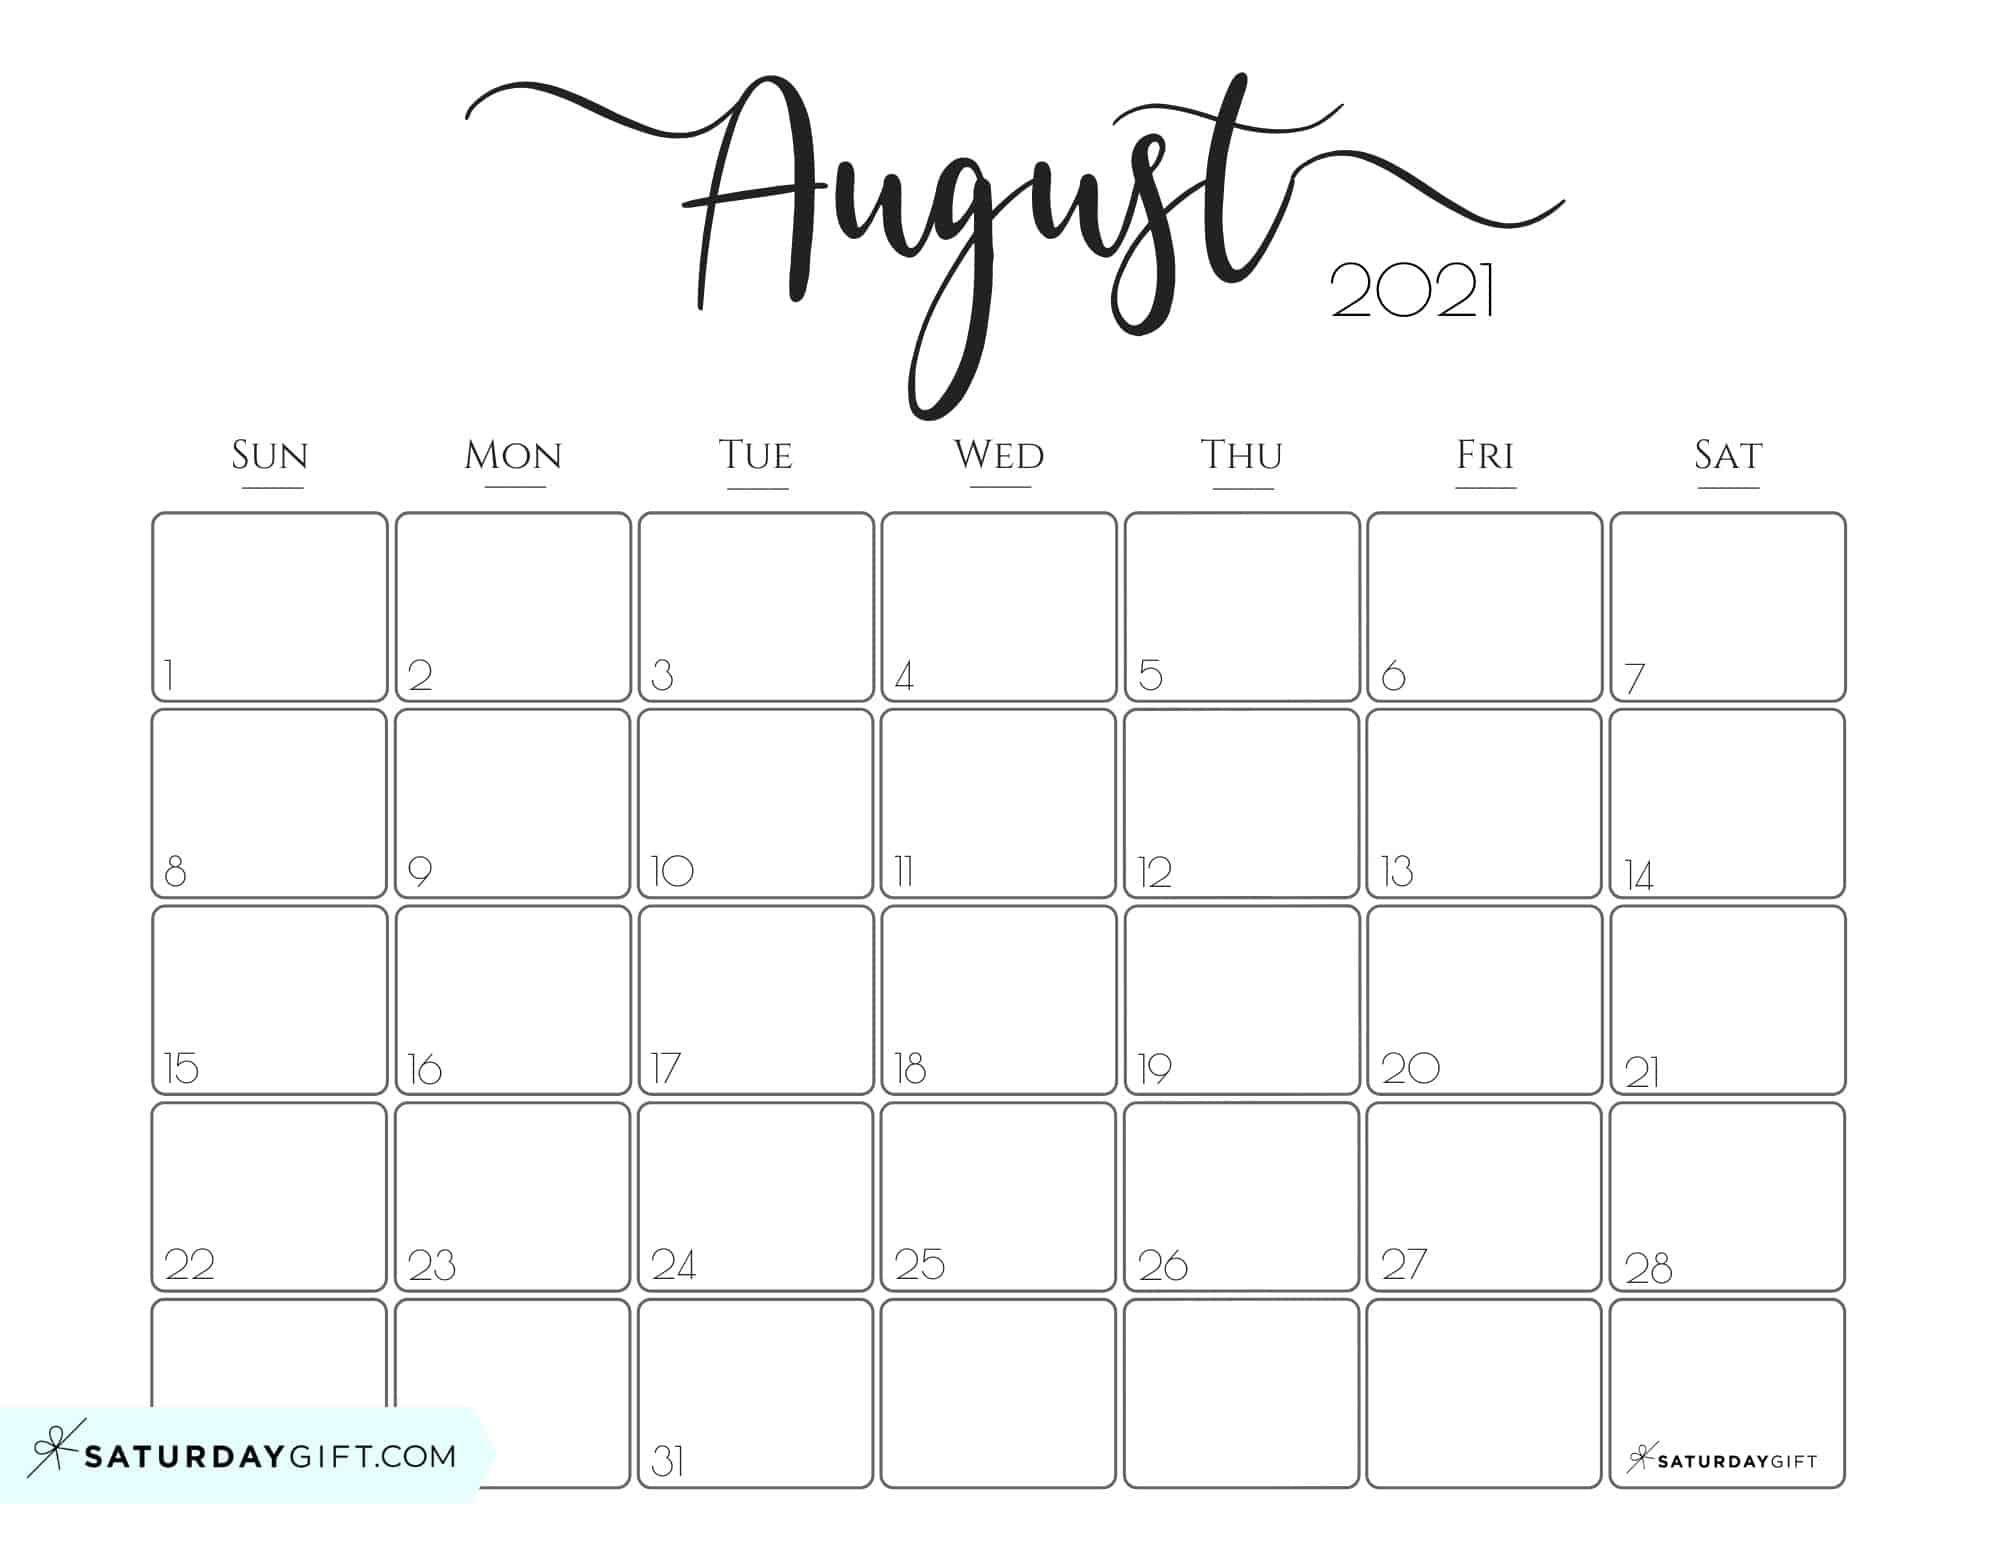 Monthly Calendar 2021 August Elegant 2021 Calendar by SaturdayGift   Pretty Printable Monthly